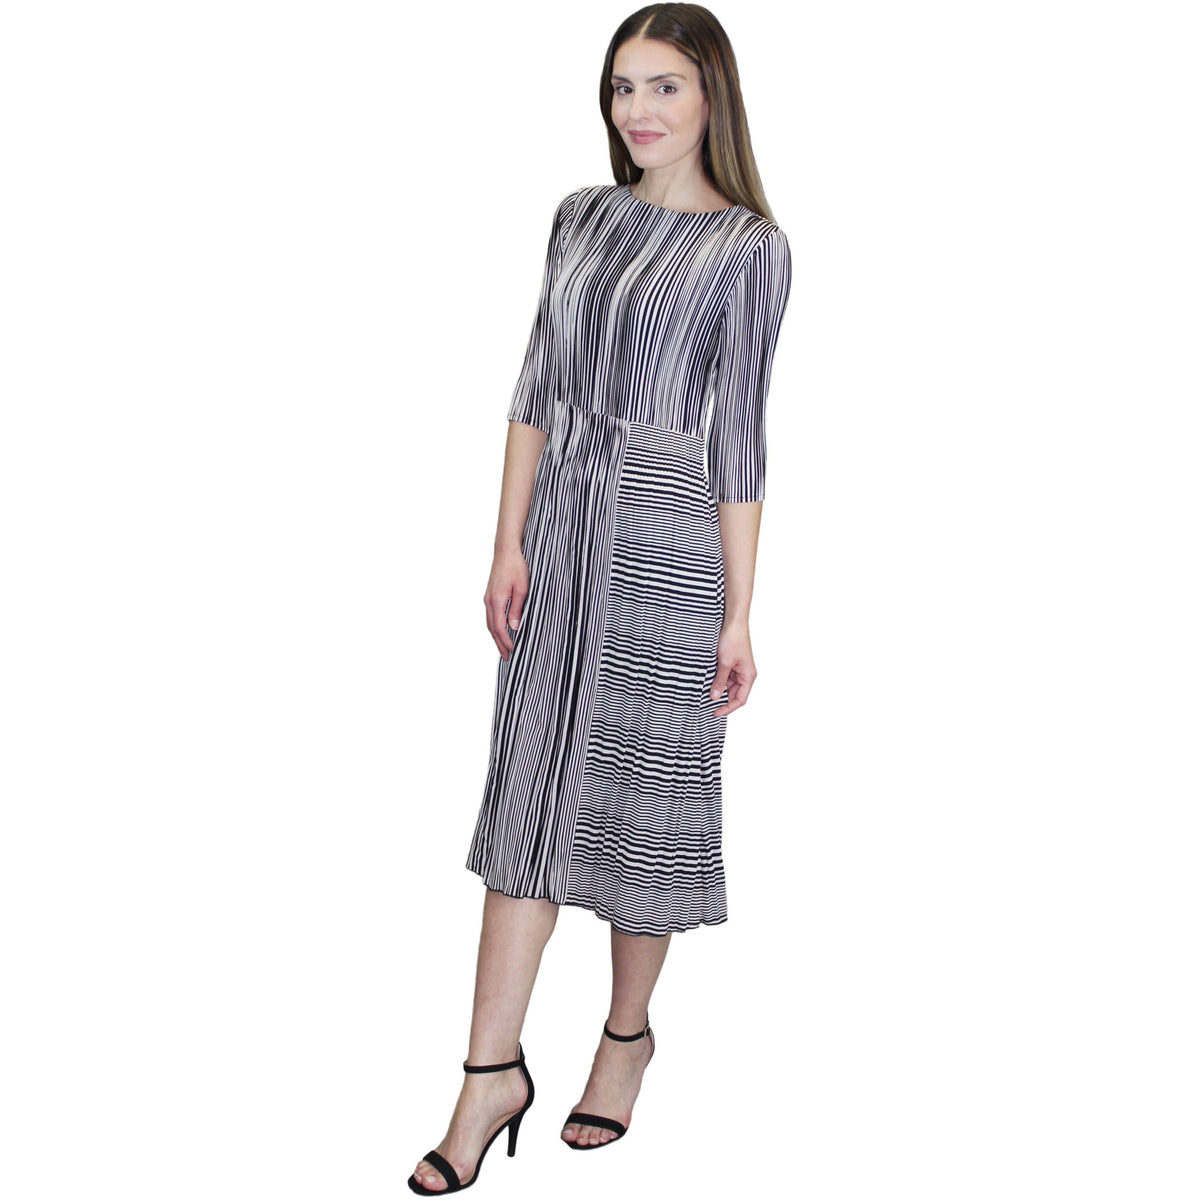 3/4 Sleeve Strip Crinkle Dress - Black and White